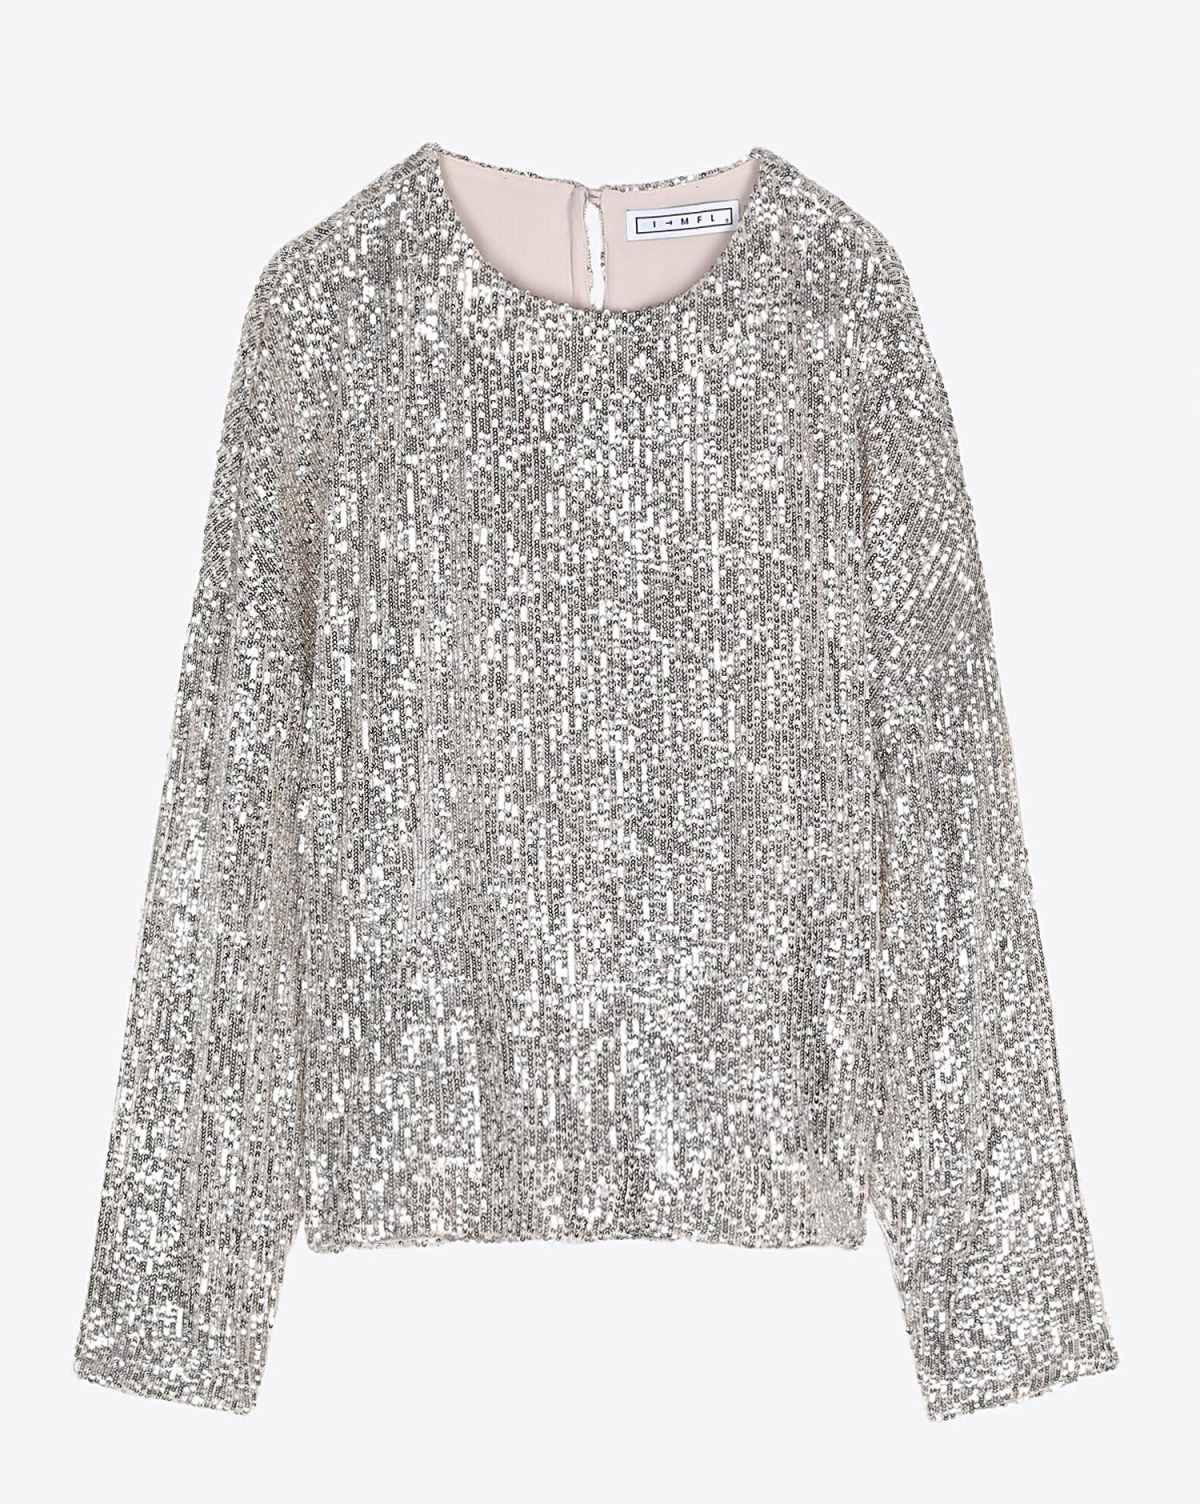 In The Mood For Love Pré-Collection Alexandra Top - Beige/Silver